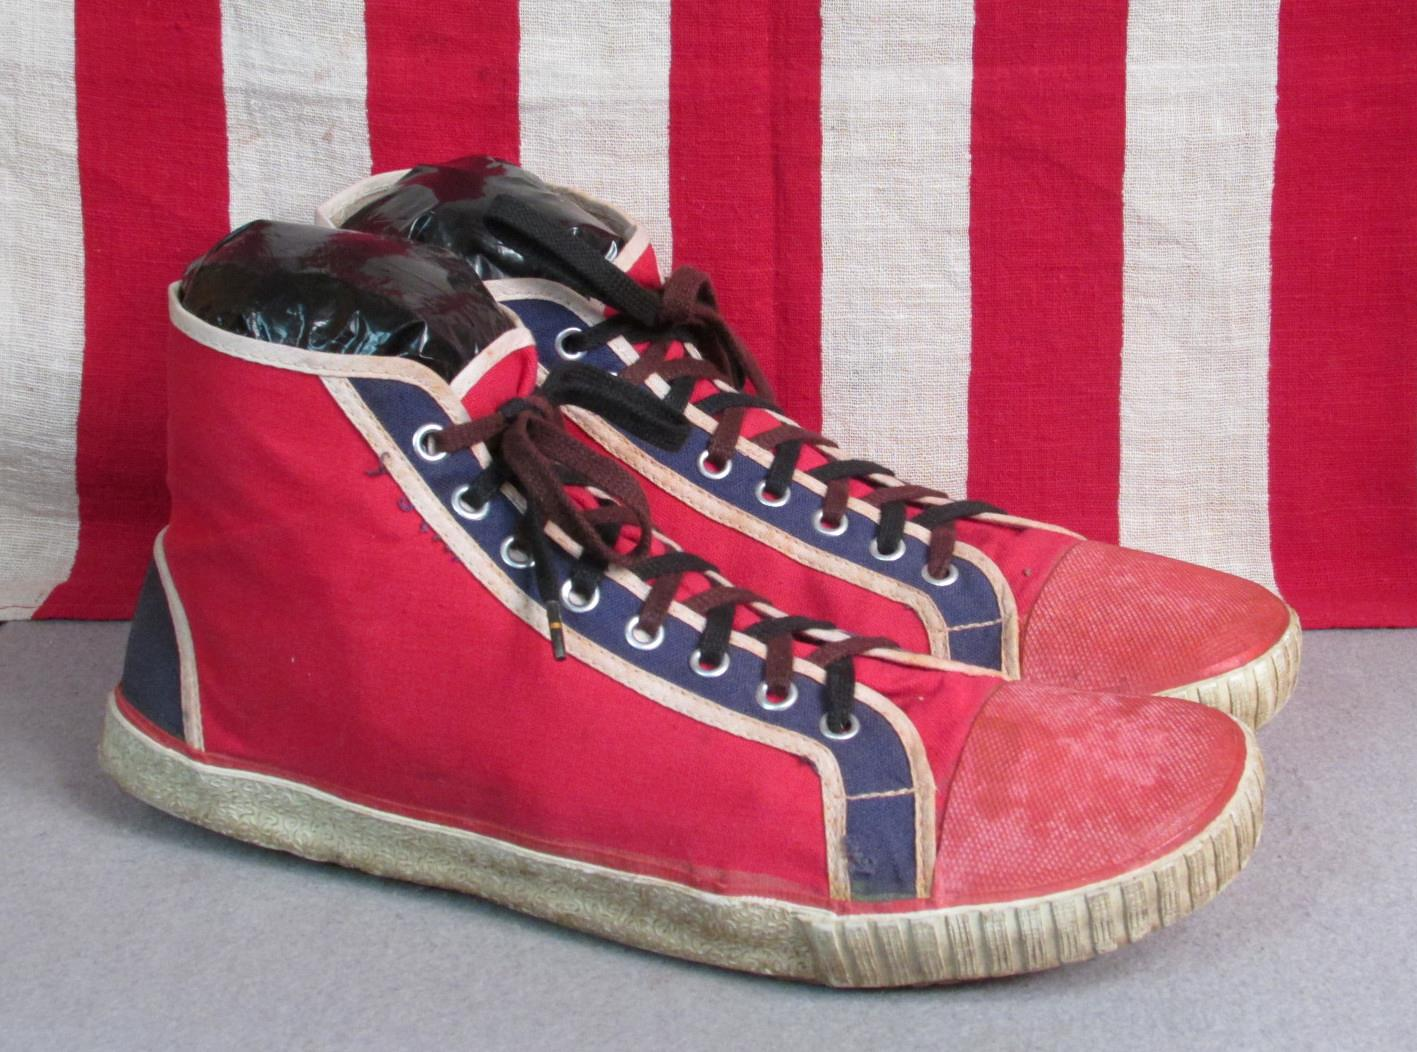 d668e4ced Vintage 1950s Champion Red Blue Wht Canvas Basketball Sneakers Shoes Sz.11  Nice!